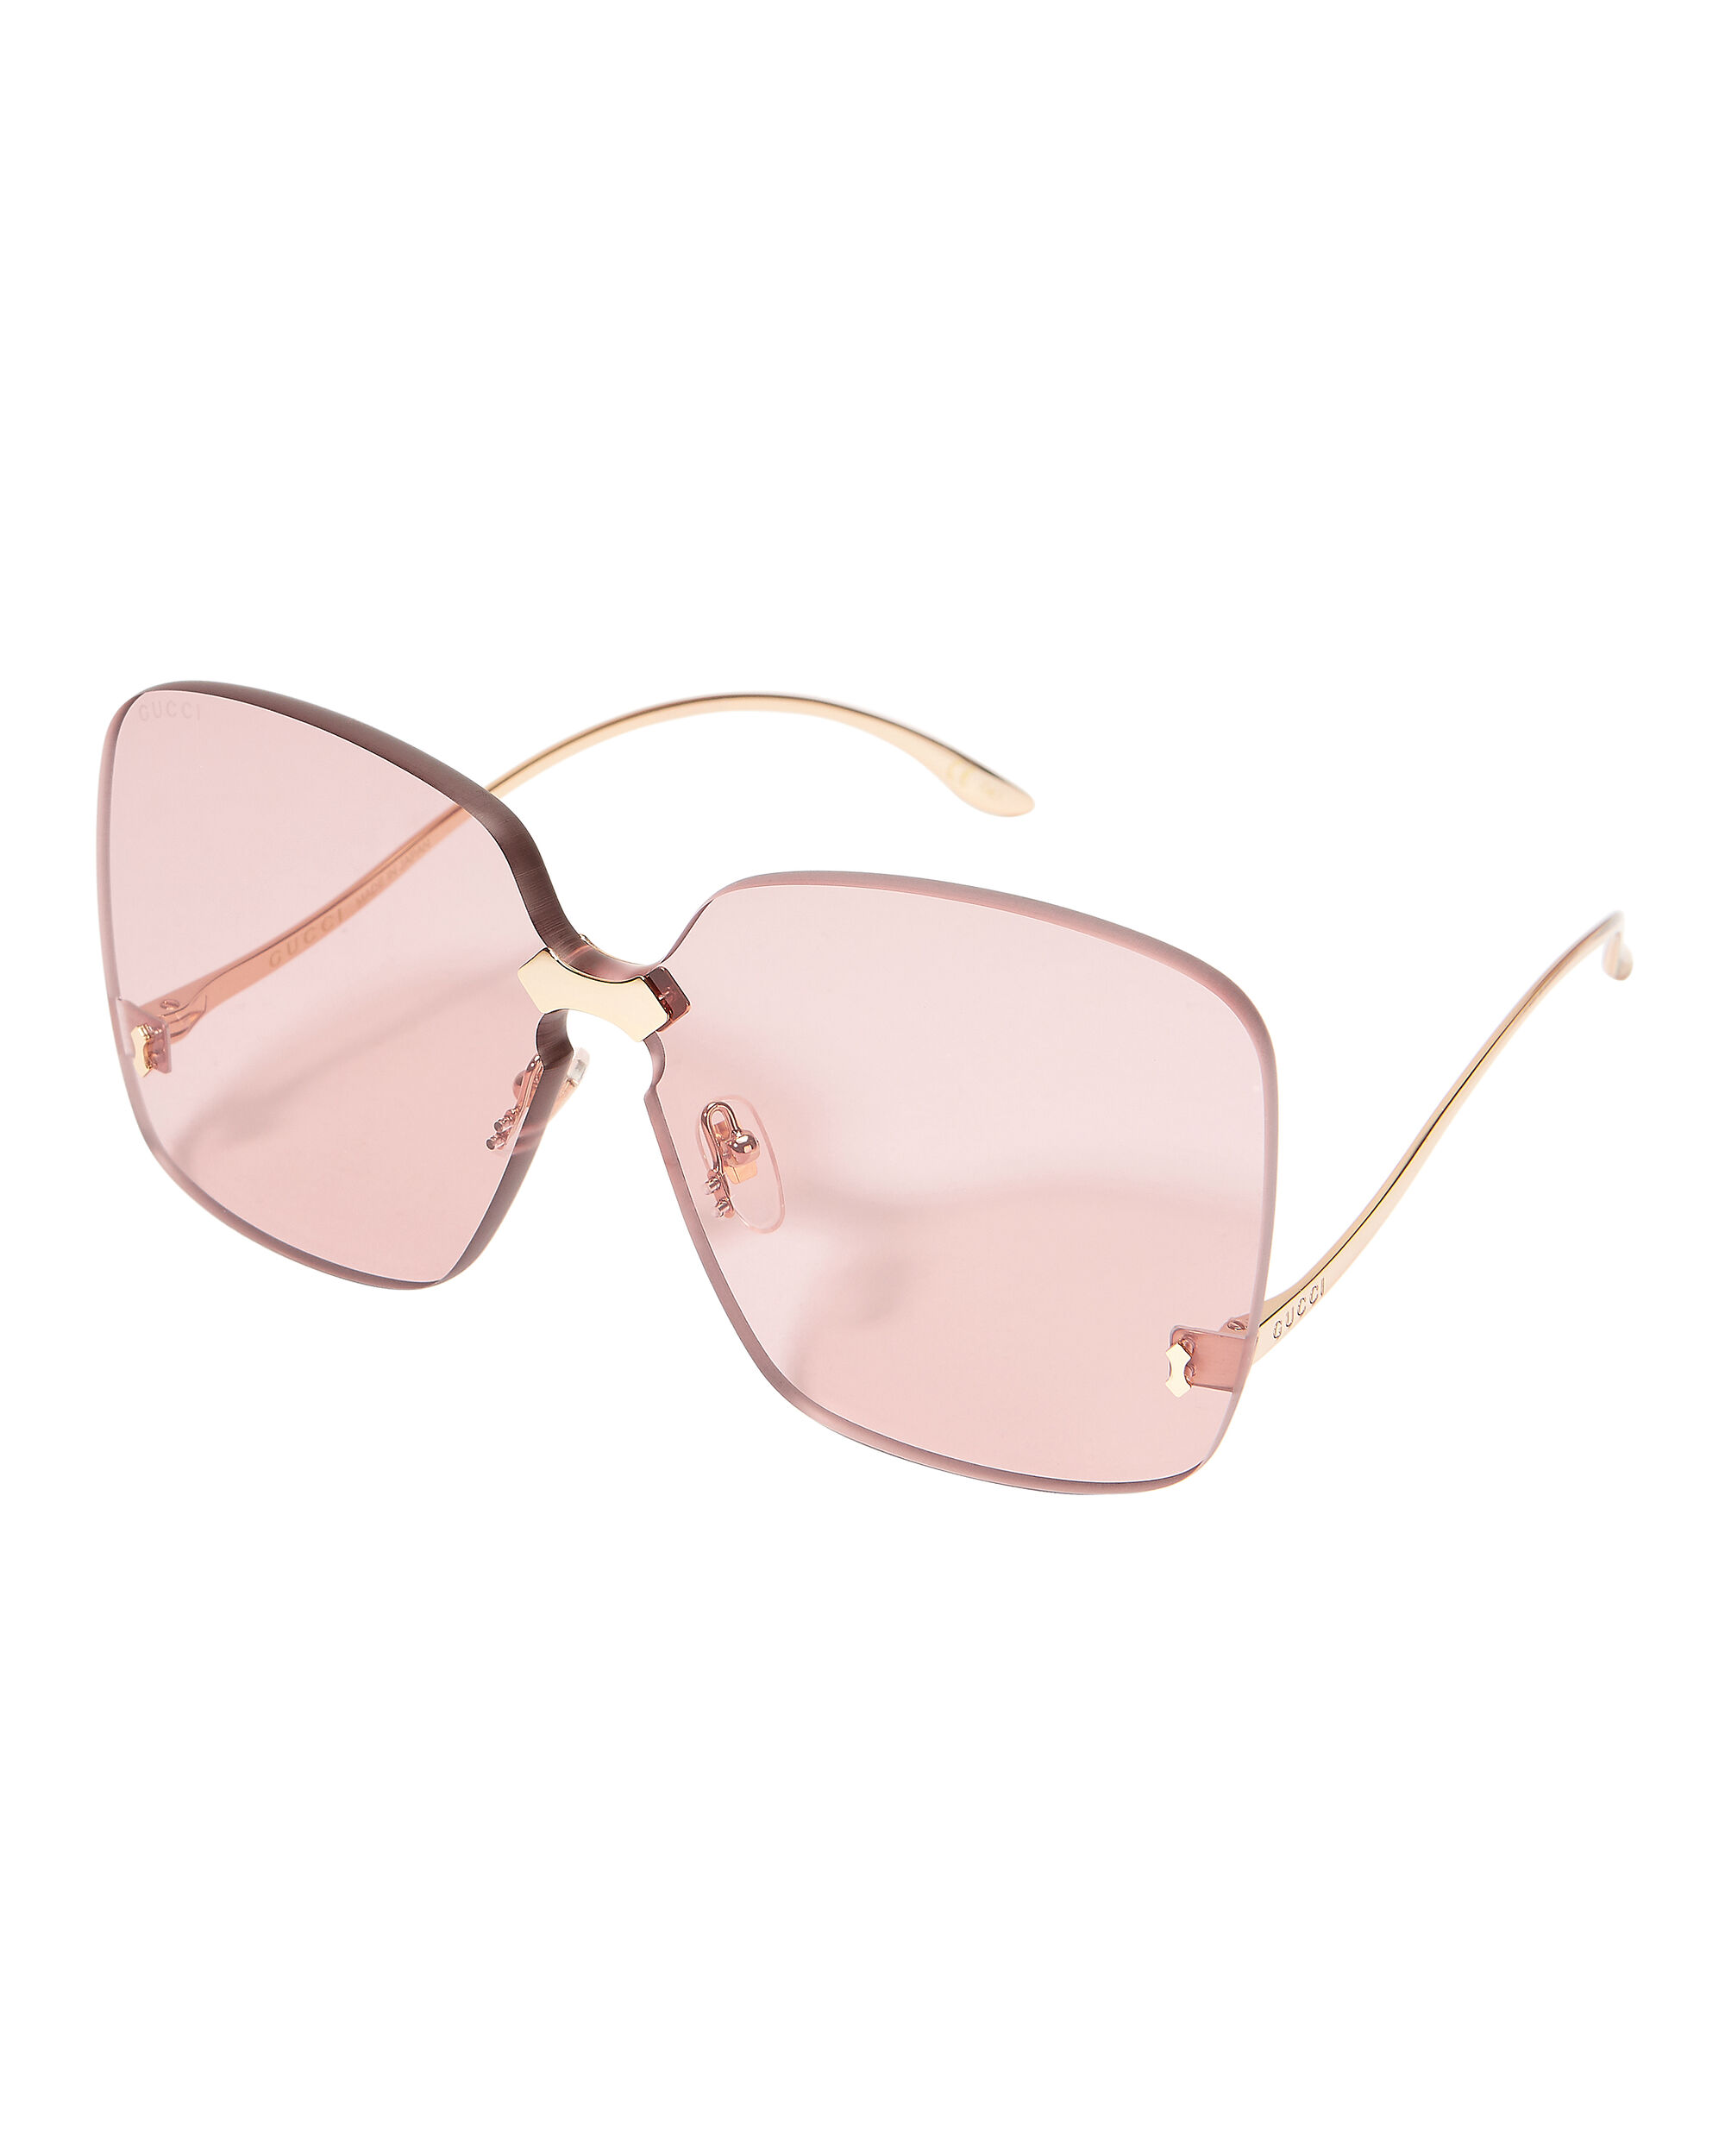 Square Rimless Pink Sunglasses, GOLD, hi-res